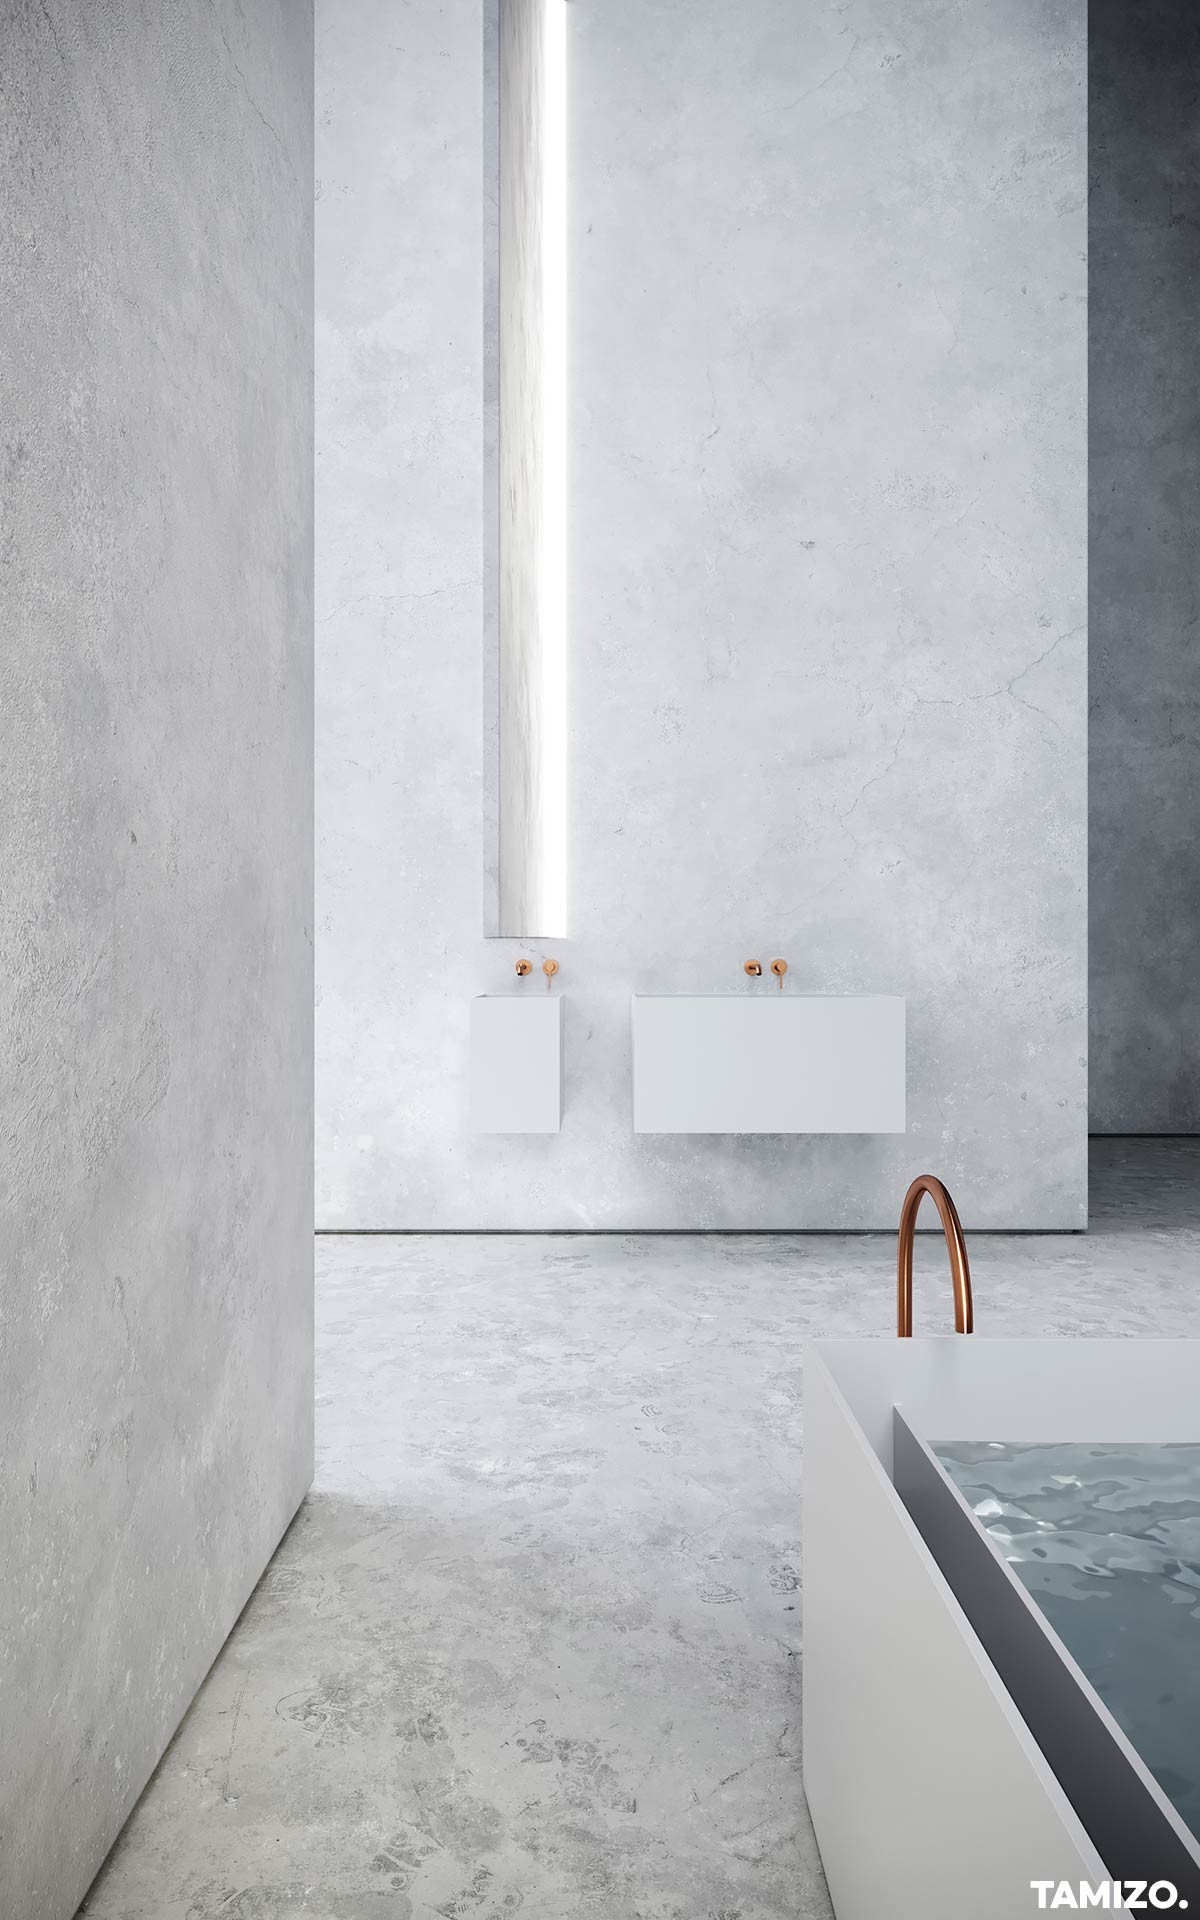 minimall_minimallone_ontheedge_bathroom_bathtub_washbasin_industrial_design_project_07